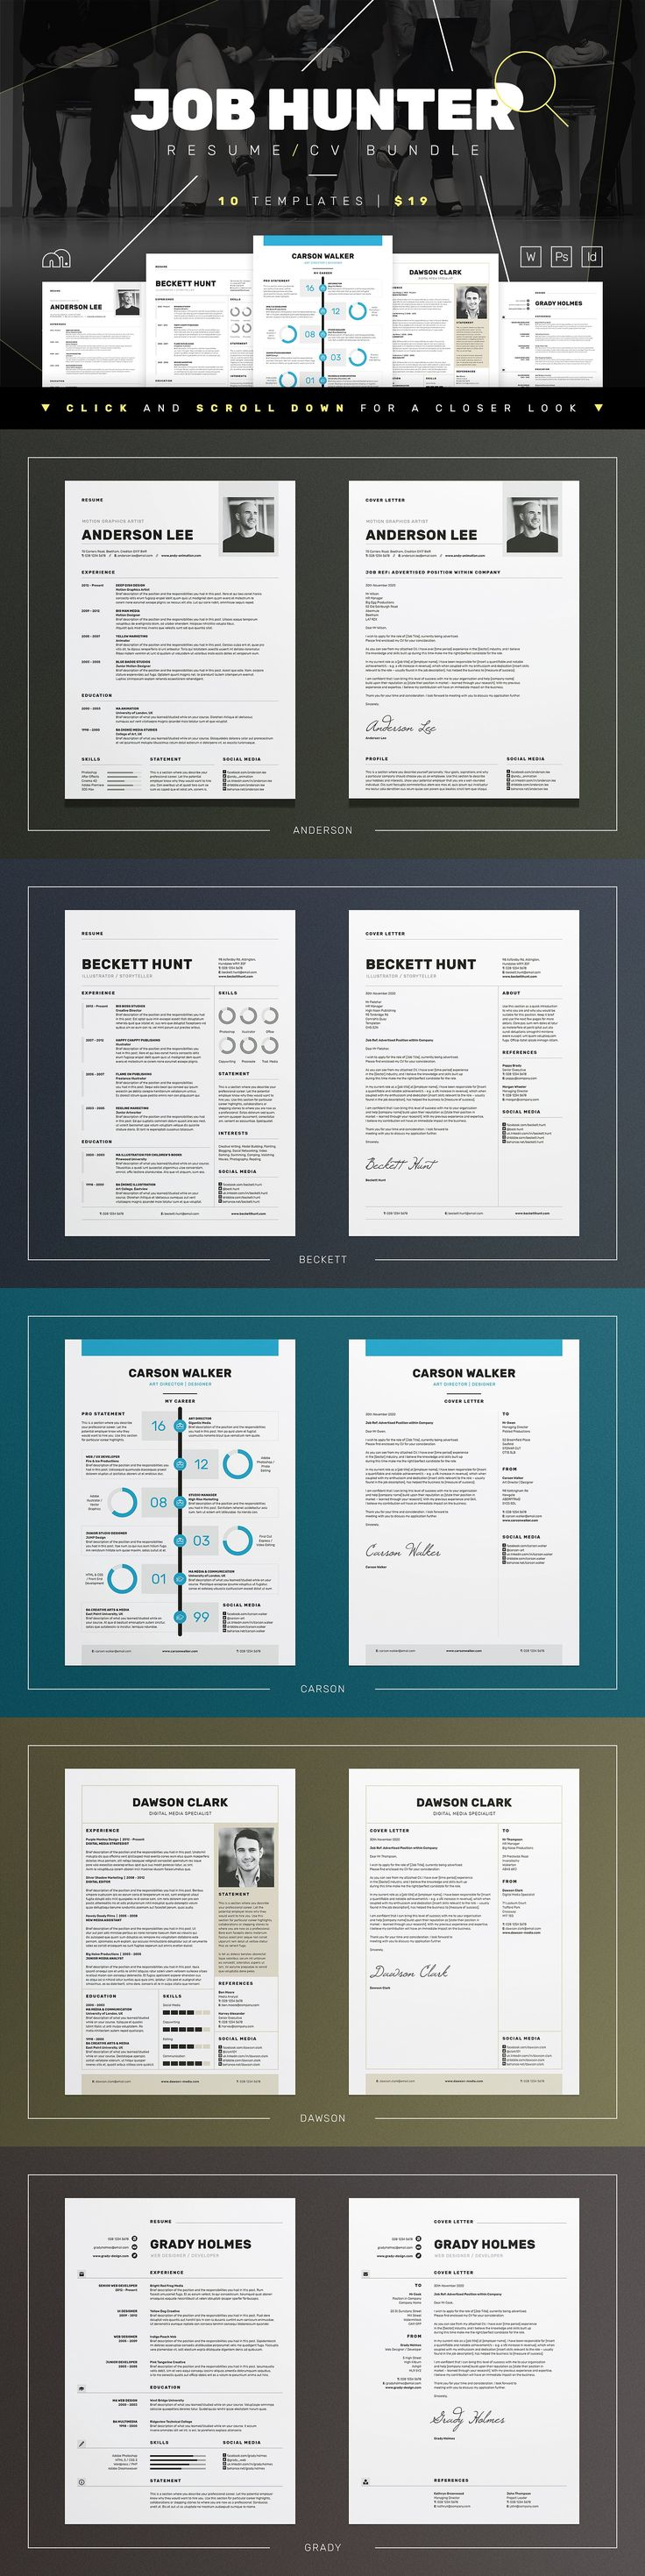 Best ideas about Resume Cover Letters